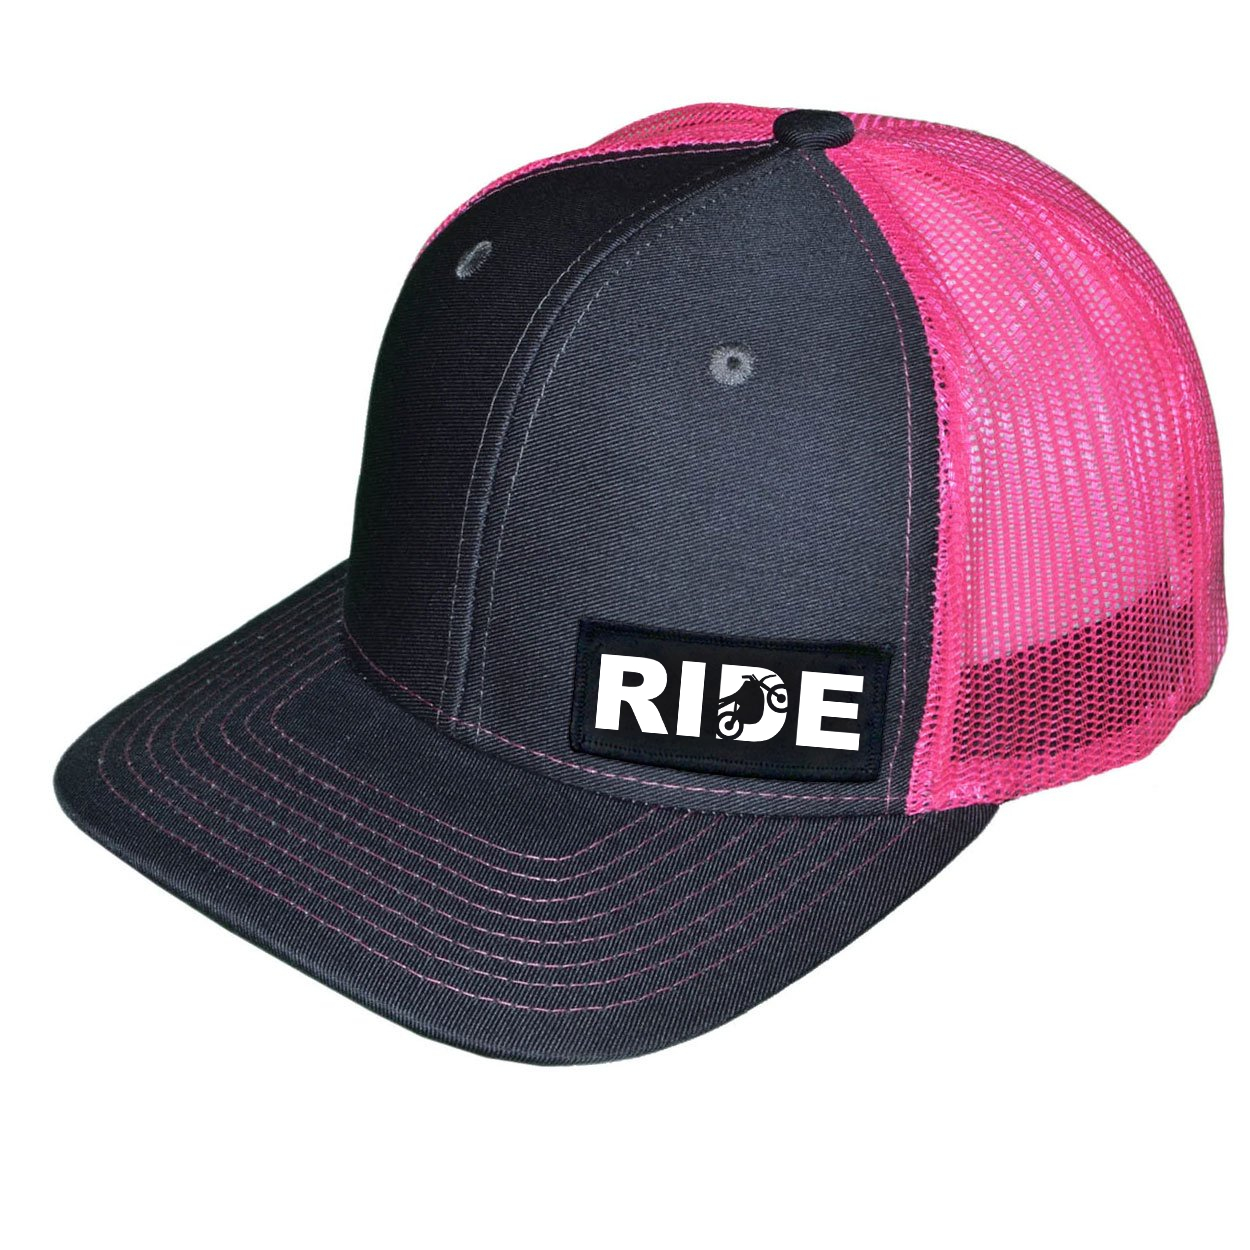 Ride Moto Logo Night Out Woven Patch Snapback Trucker Hat Dark Gray/Neon Pink (White Logo)